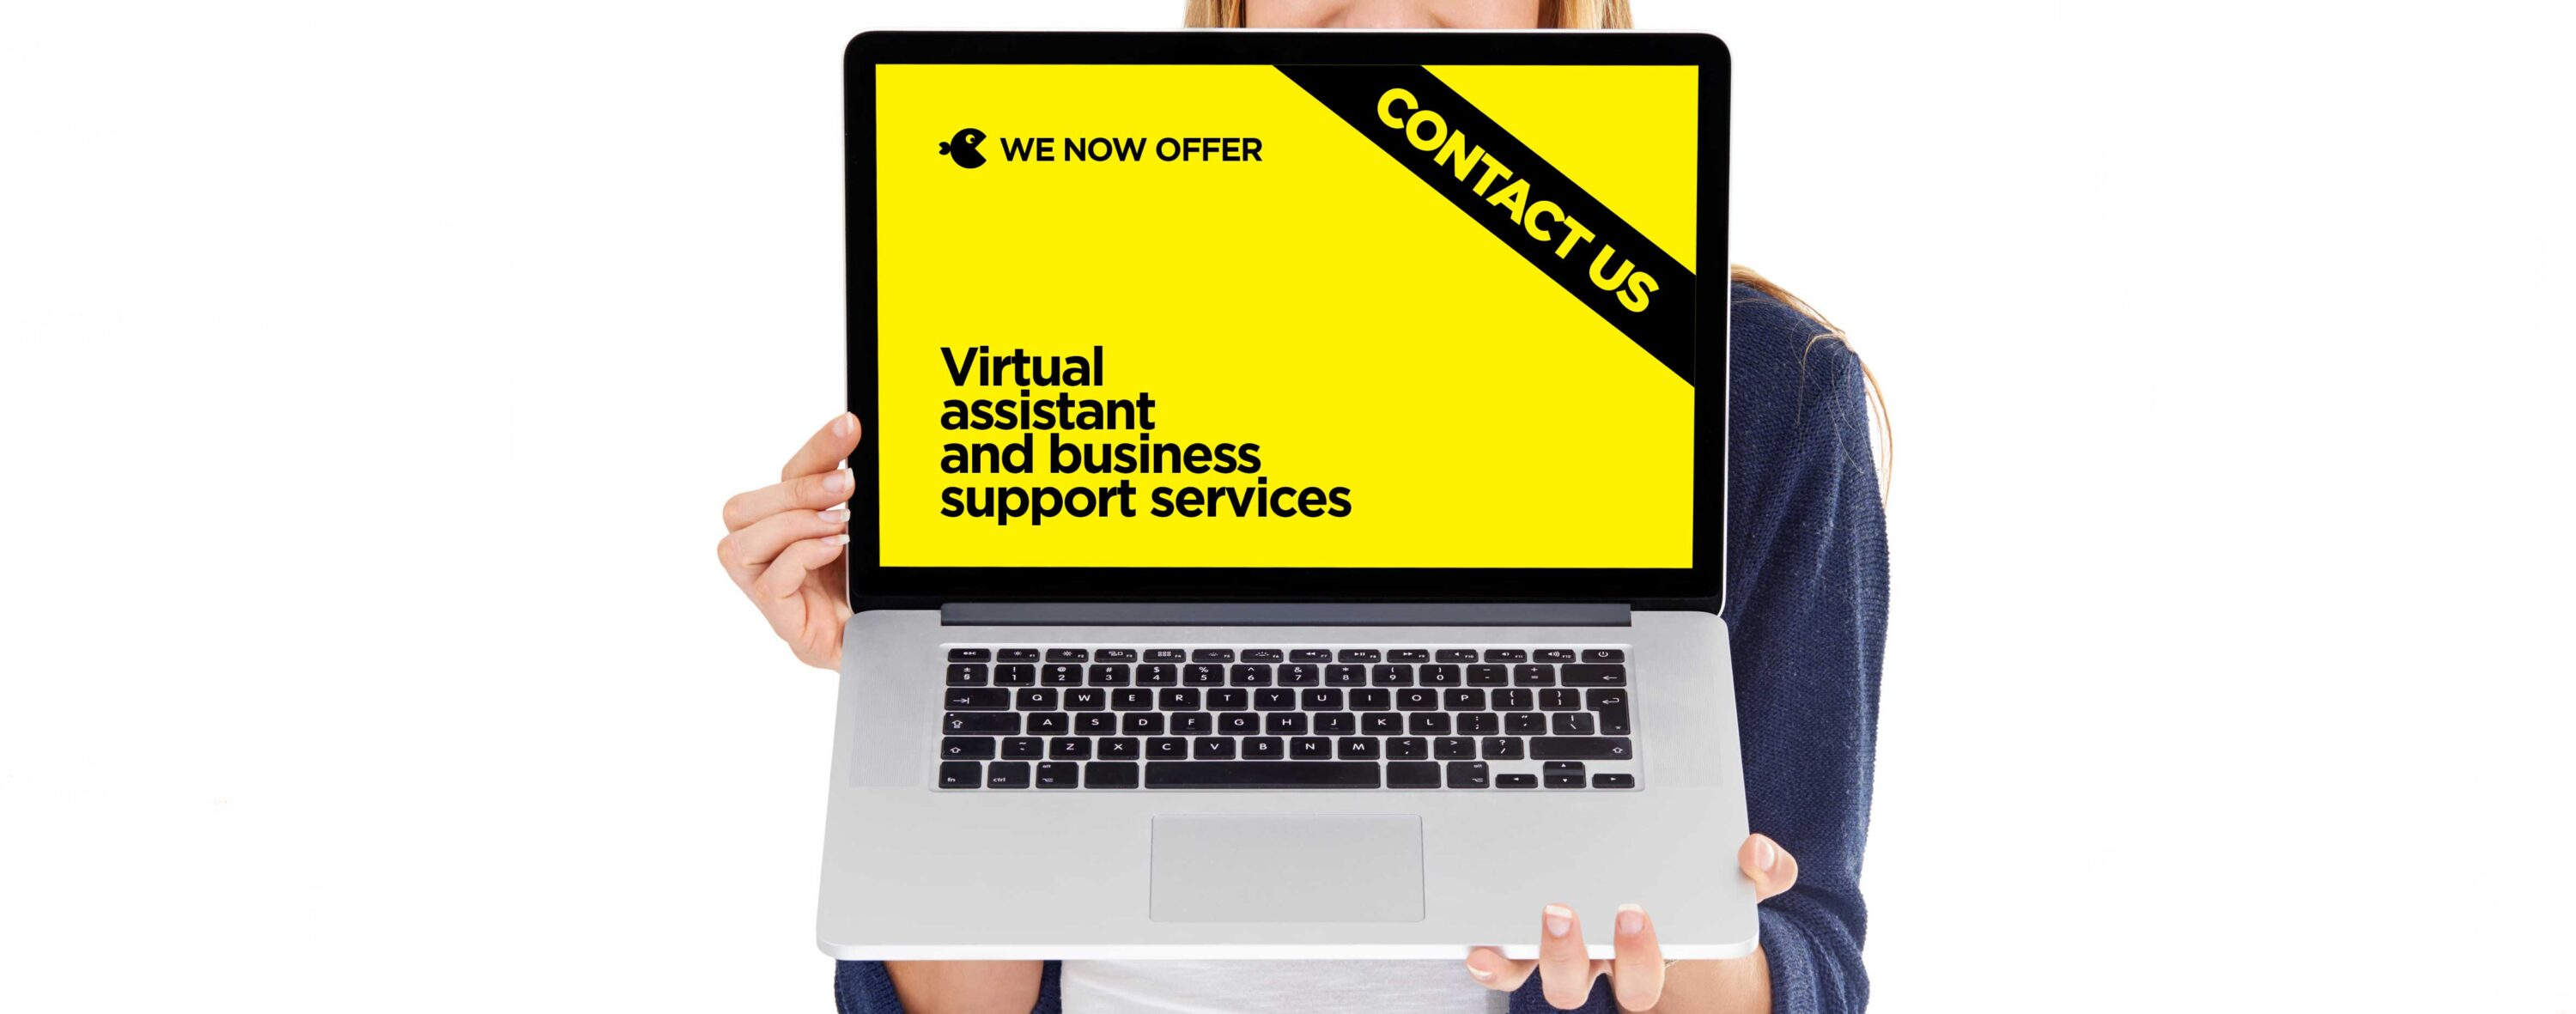 Virtual assistant and business support services now available from Littlefish